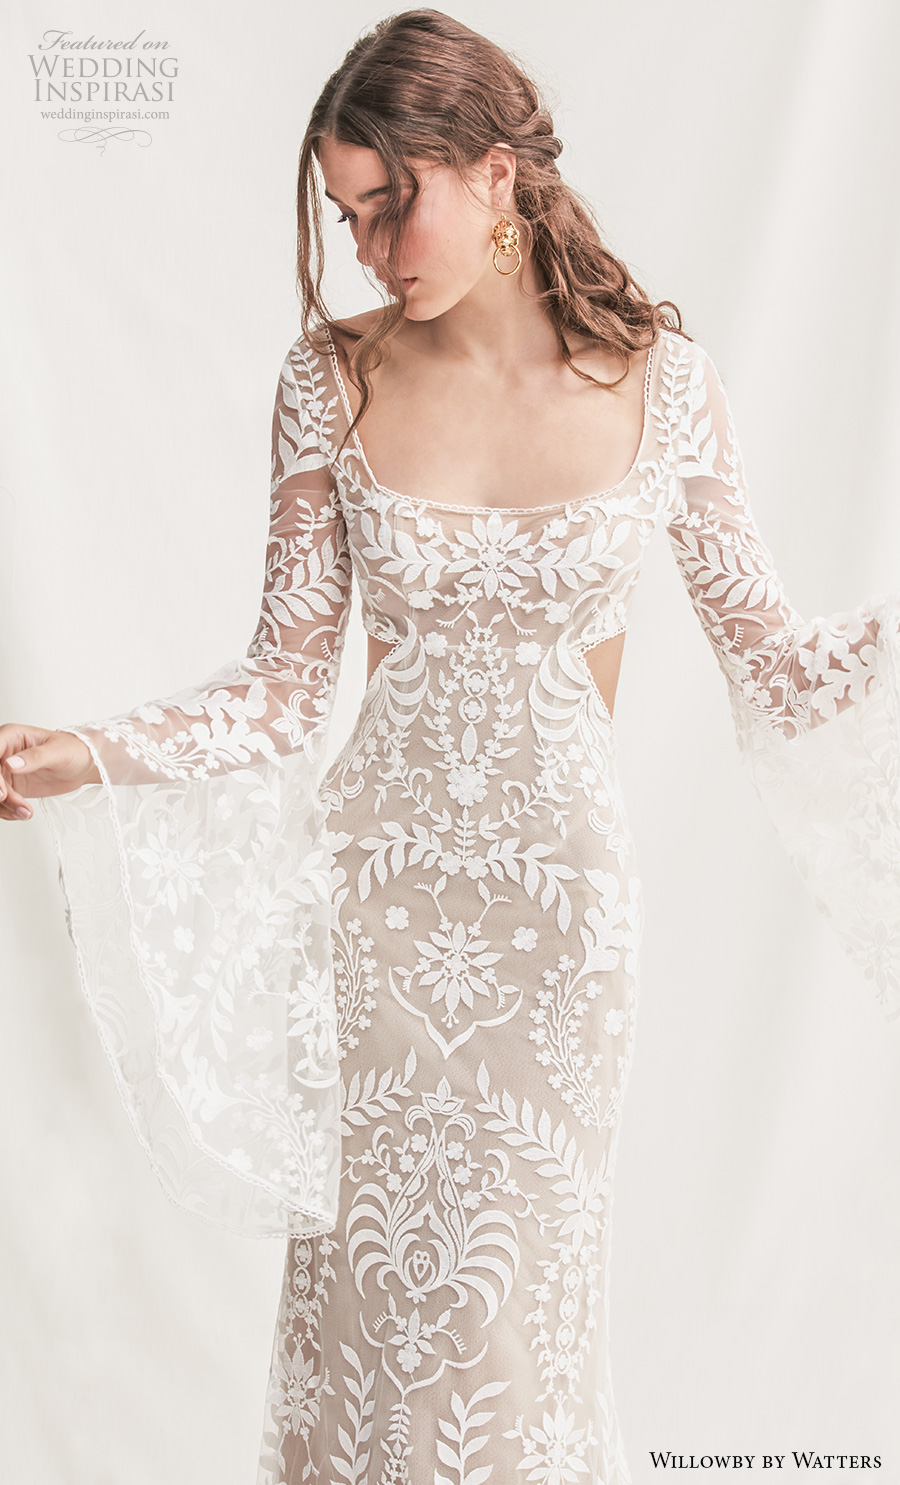 willowby by watters spring 2019 bridal long bell sleeves square neckline full embellishment bohemian elegant sheath wedding dress keyhole back sweep train (6) zv